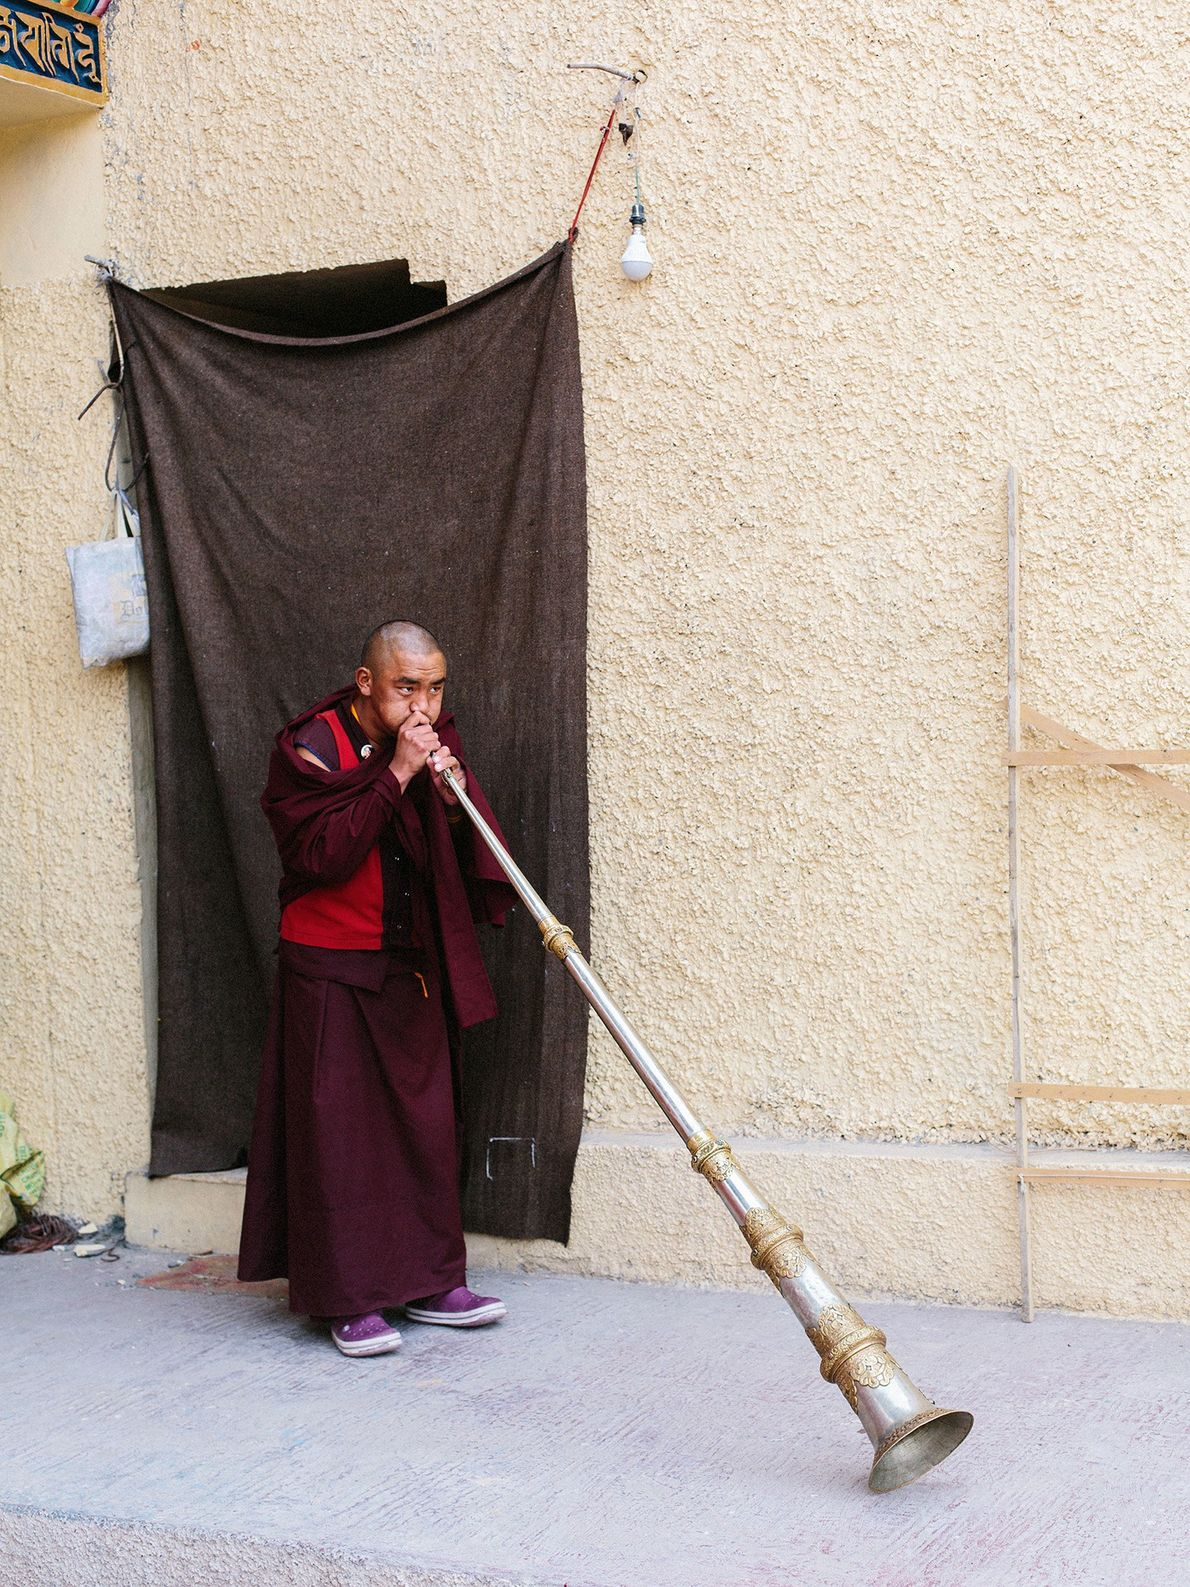 A young monk at the Karma Dupgyud Choeling Monastery blows into a ceremonial trumpet, or dungchen.